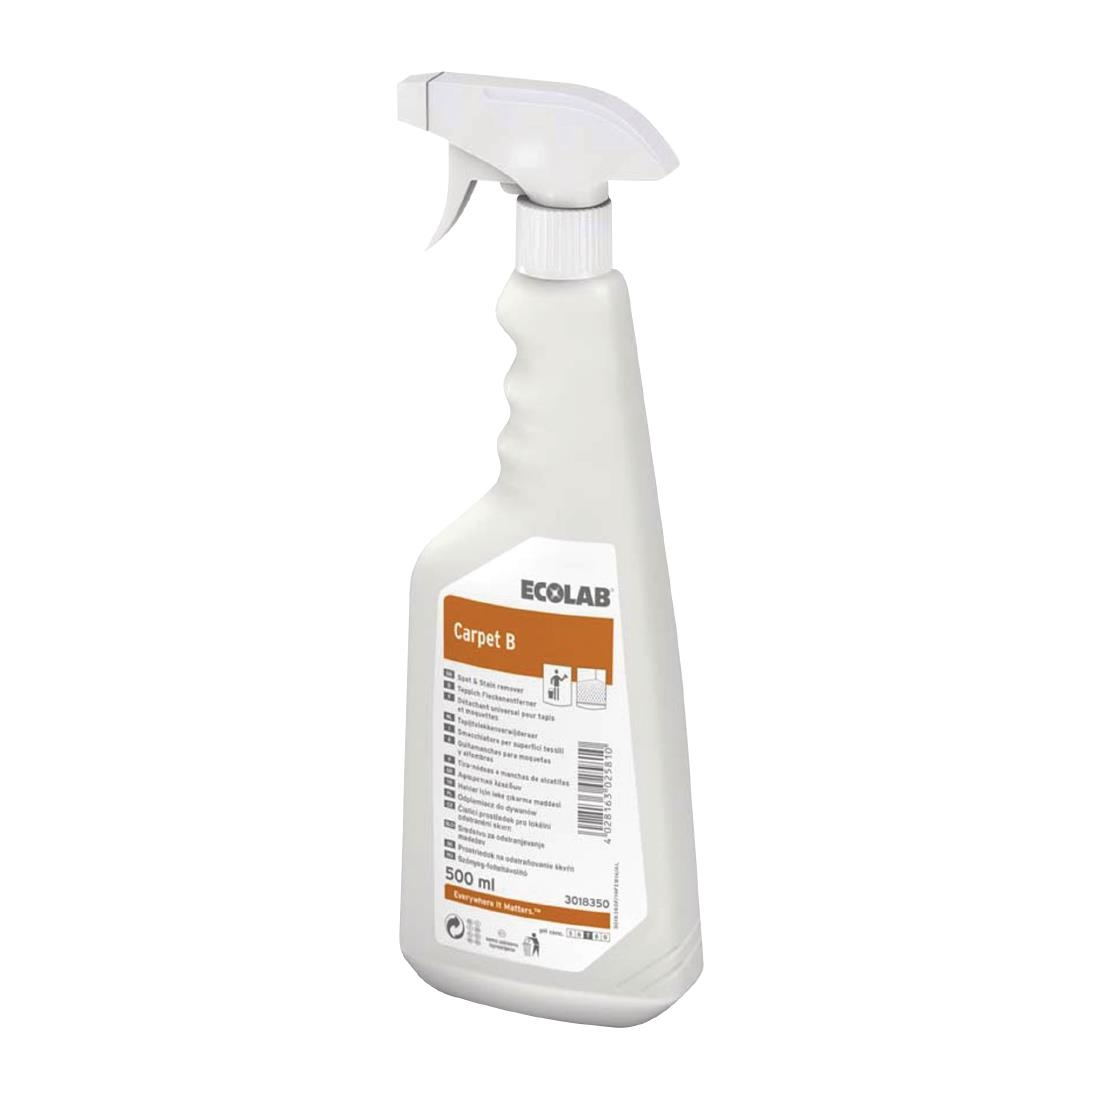 Image of Ecolab Carpet B Carpet Cleaner For Oil & Fat-Based Stains Ready To Use 500ml (6 Pack) Pack of 6